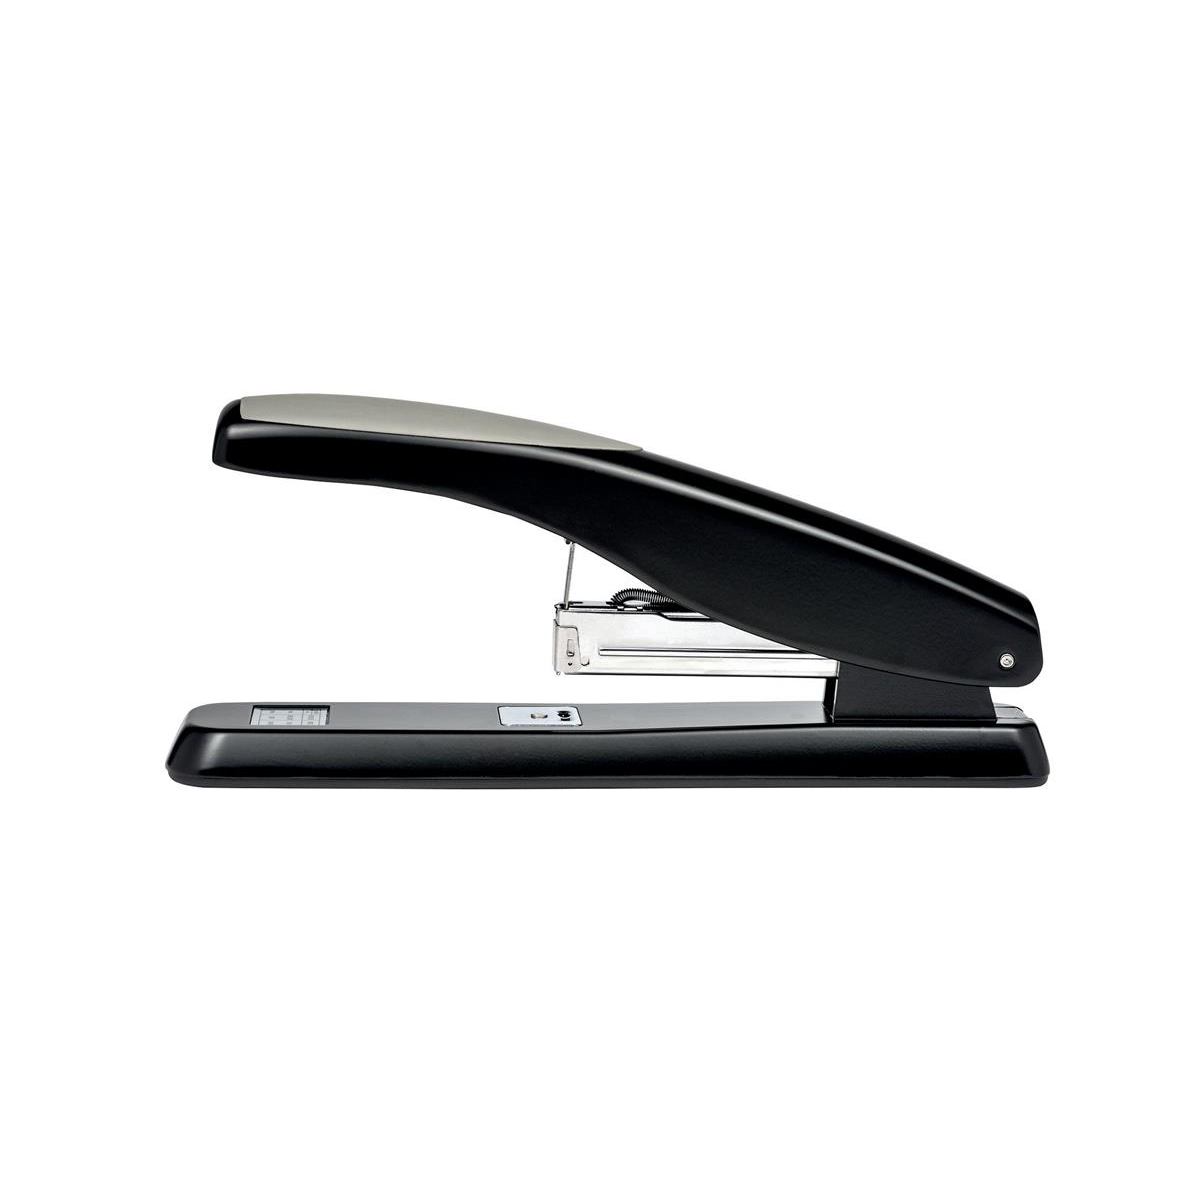 Long Arm Staplers 5 Star Office Multi-Purpose Long Handle Stapler 2-50 Sheet Capacity Takes 26/6 or 24/6 Staples Black